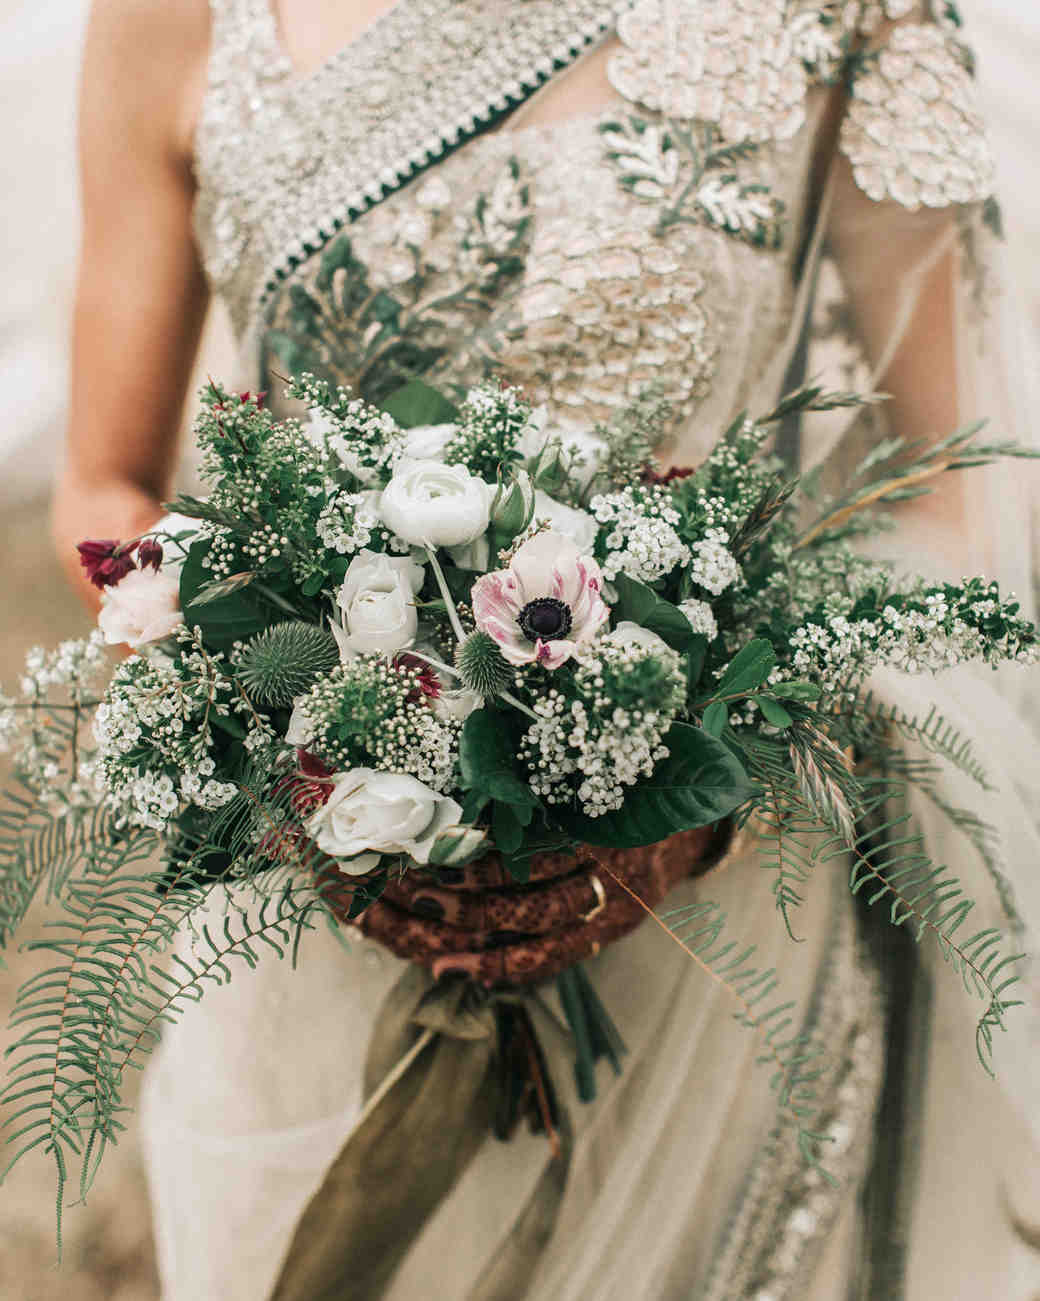 zai phil camping wedding bride bouquet